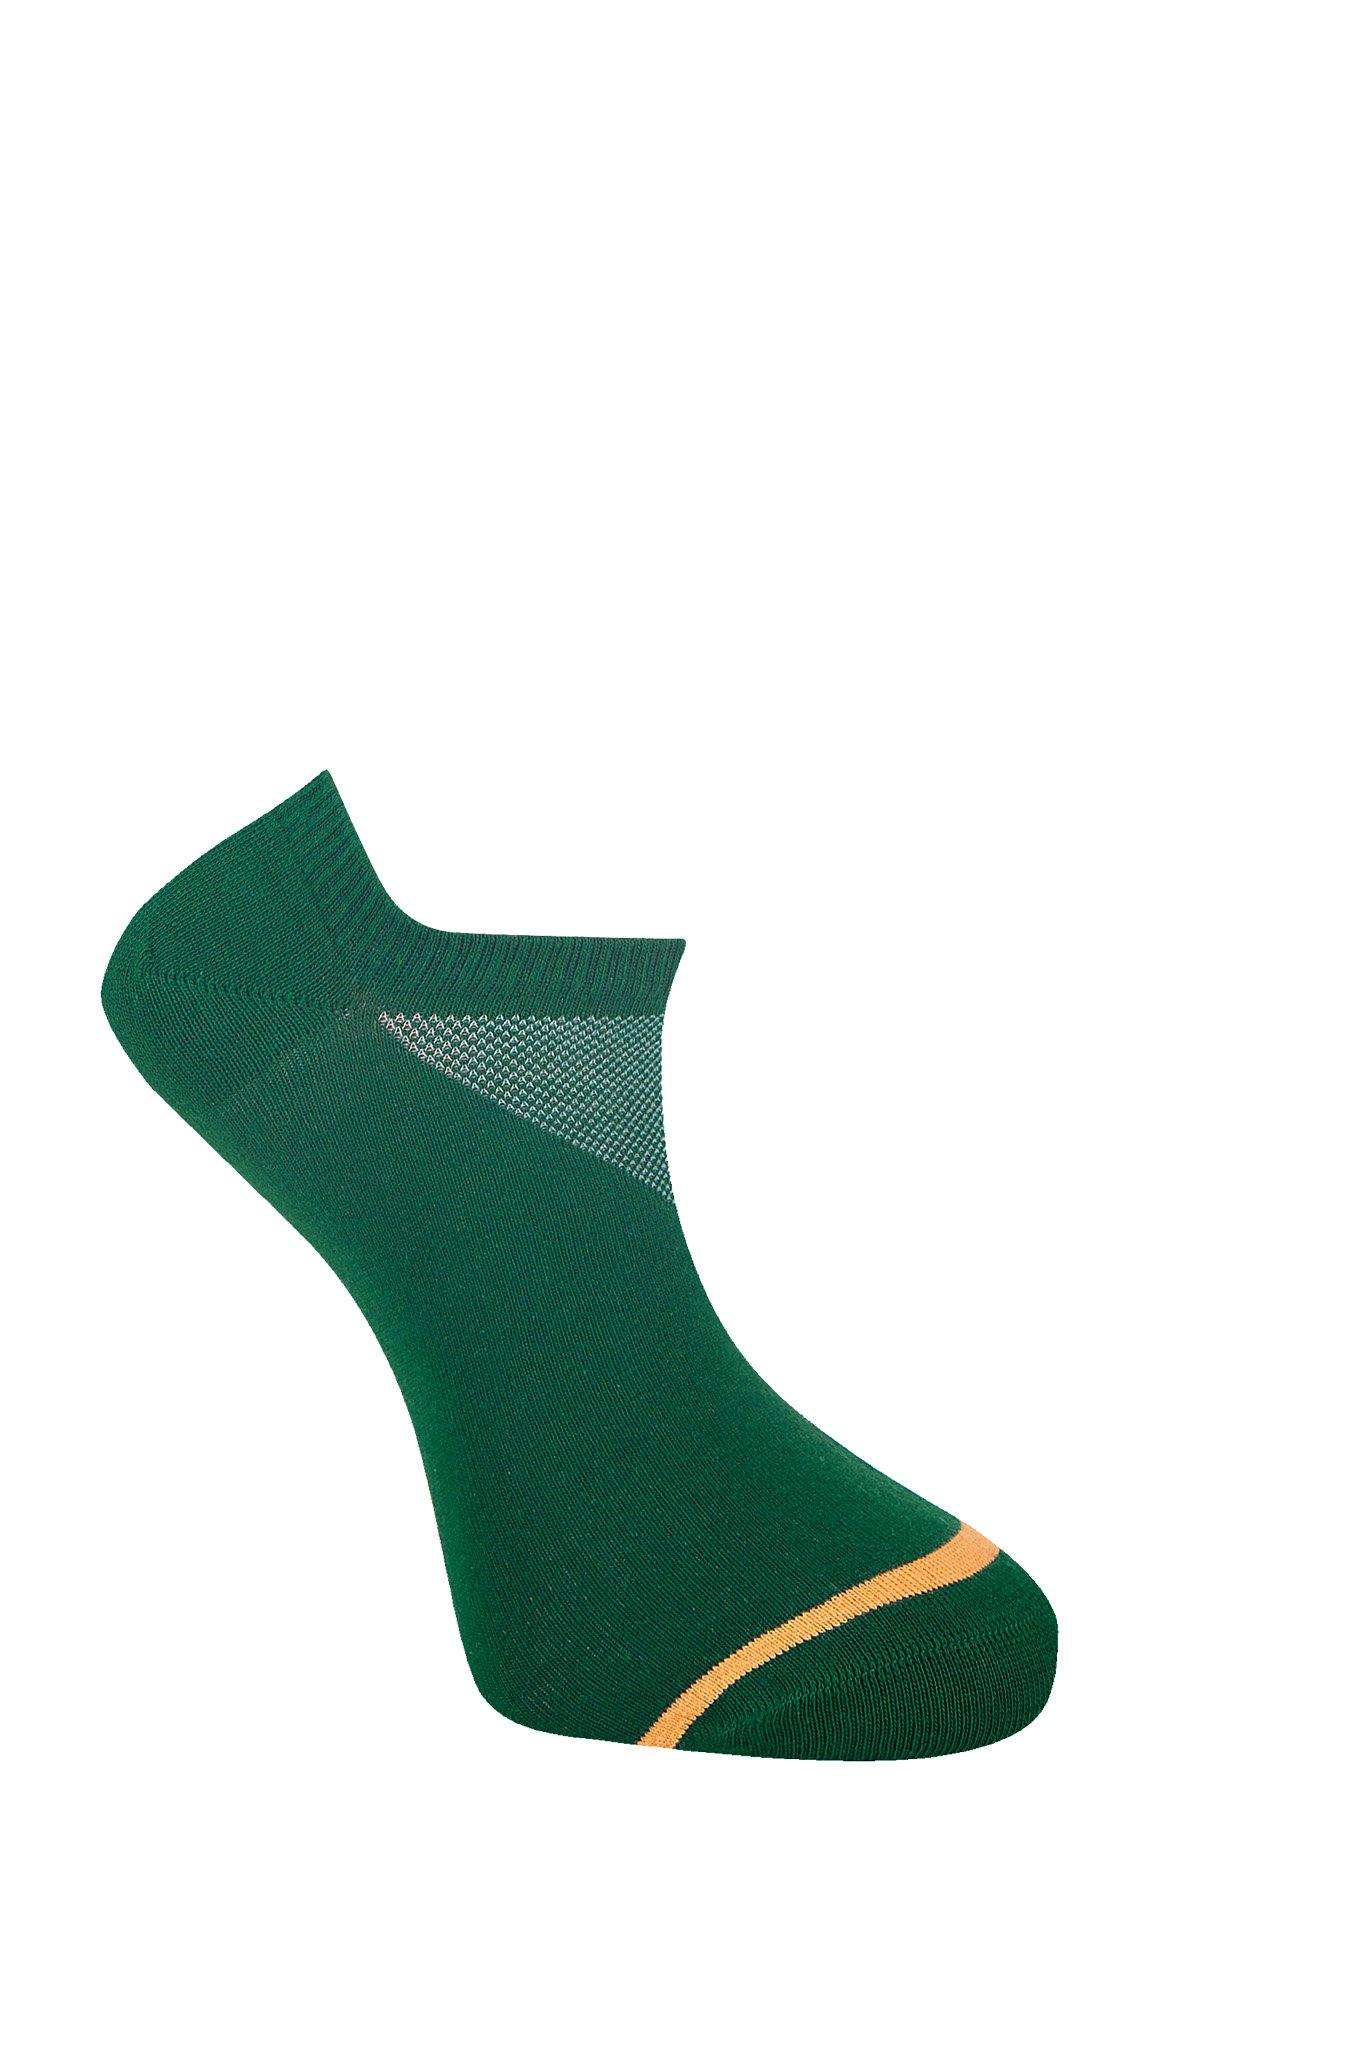 SUN Emerald Organic Cotton Trainer Socks - Komodo Fashion